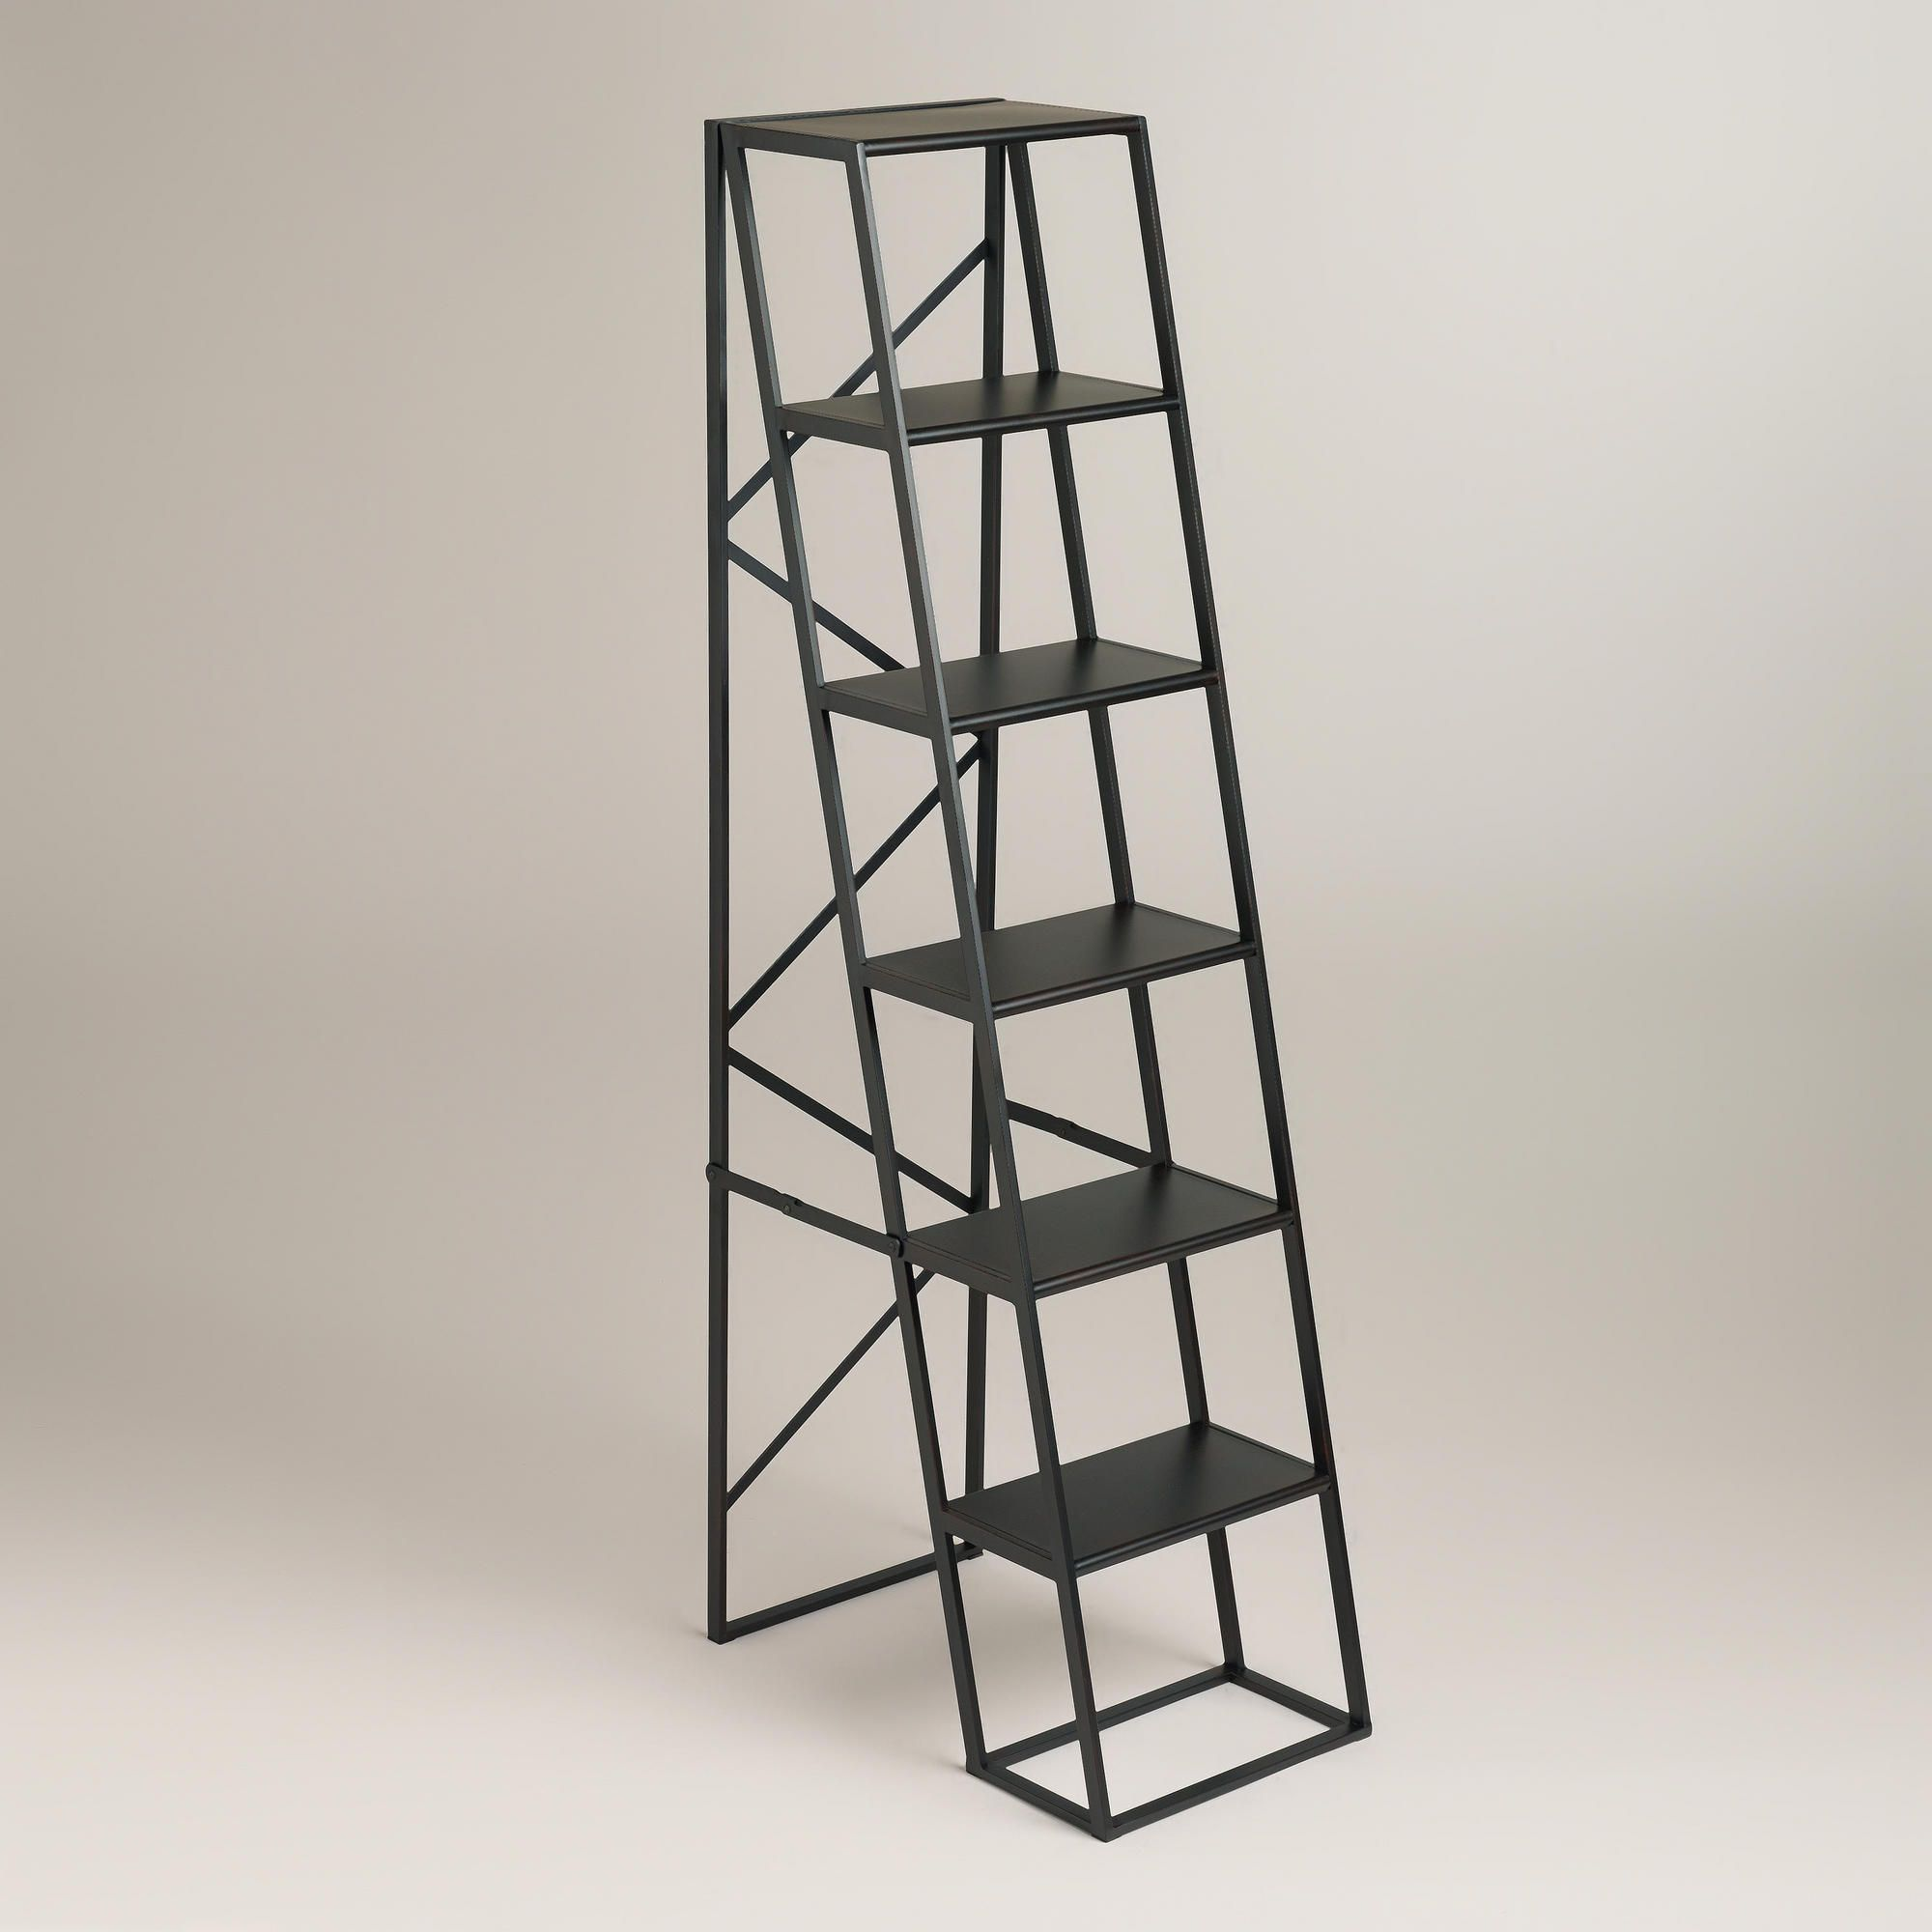 Tall decorative ladder world market for my future home